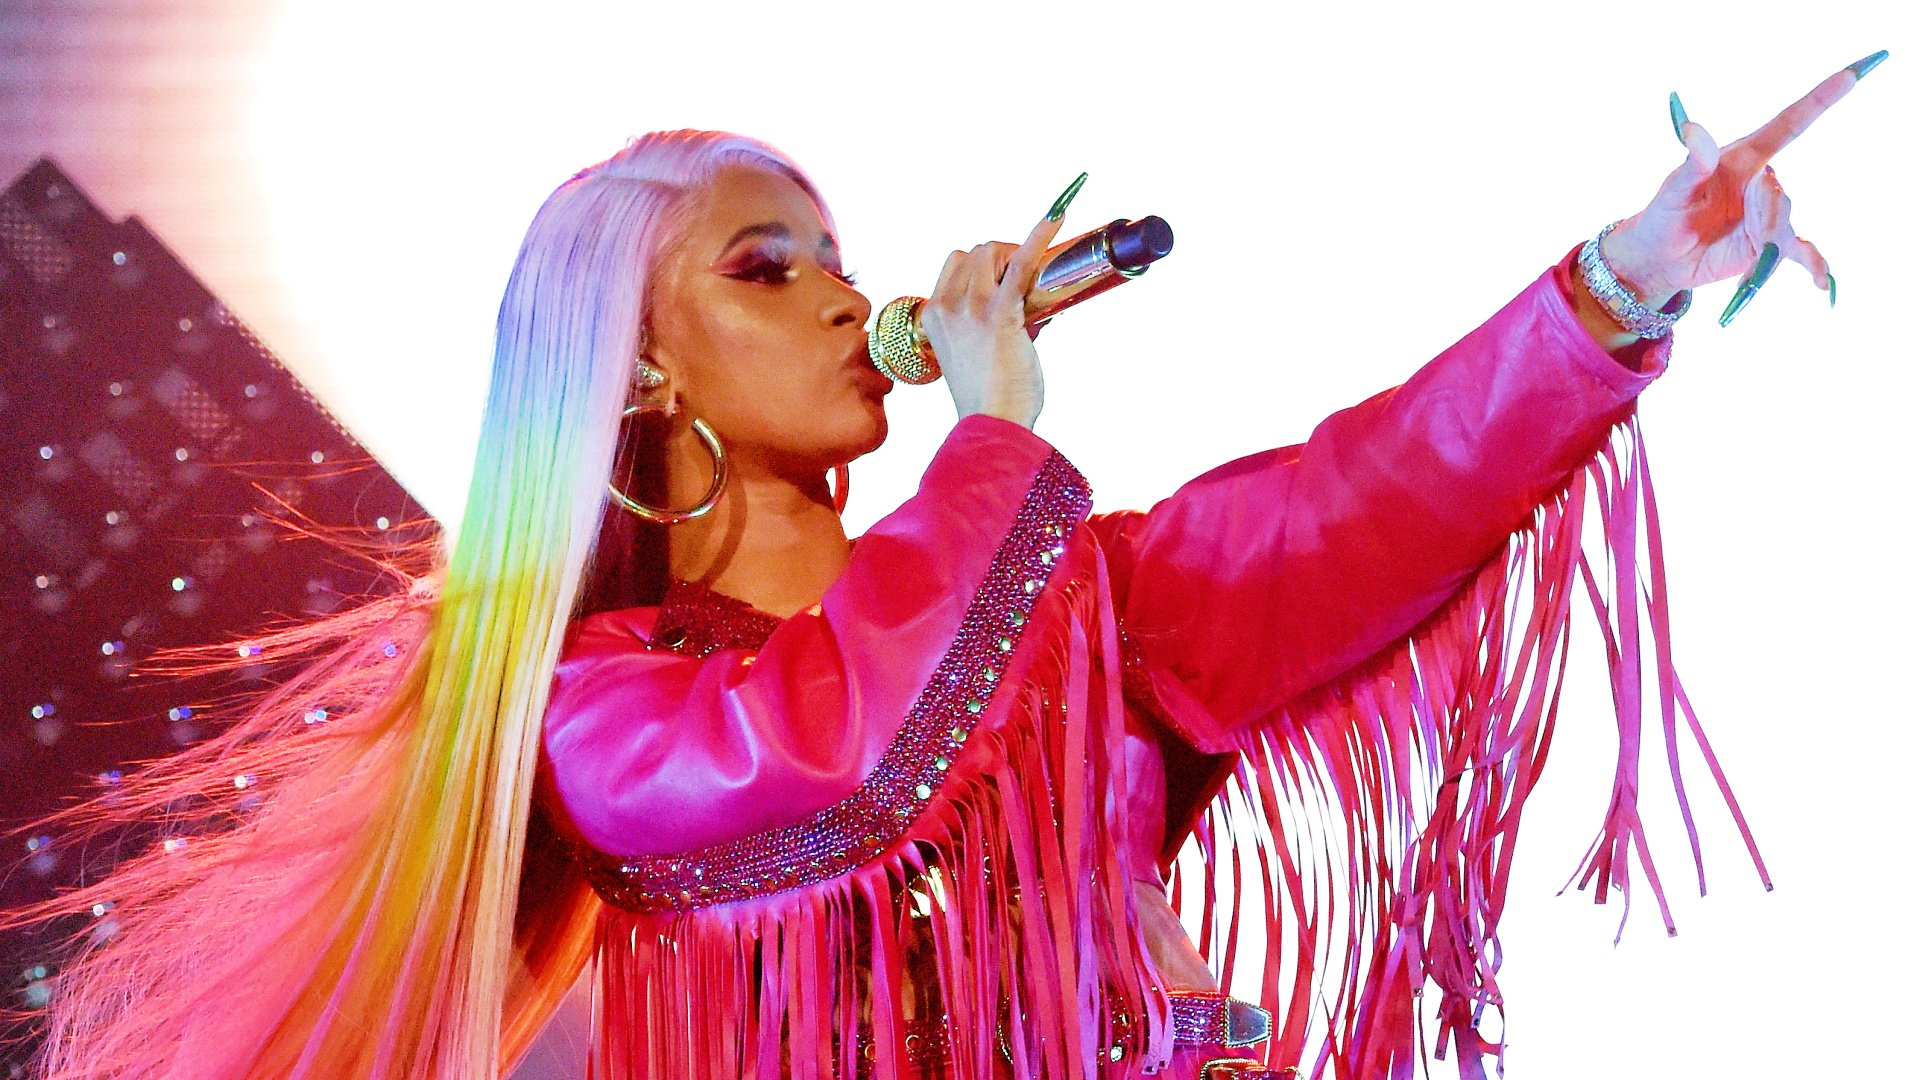 Joanna Mazur Update: Cardi B Says Postpartum Depression Came 'Out Of Nowhere